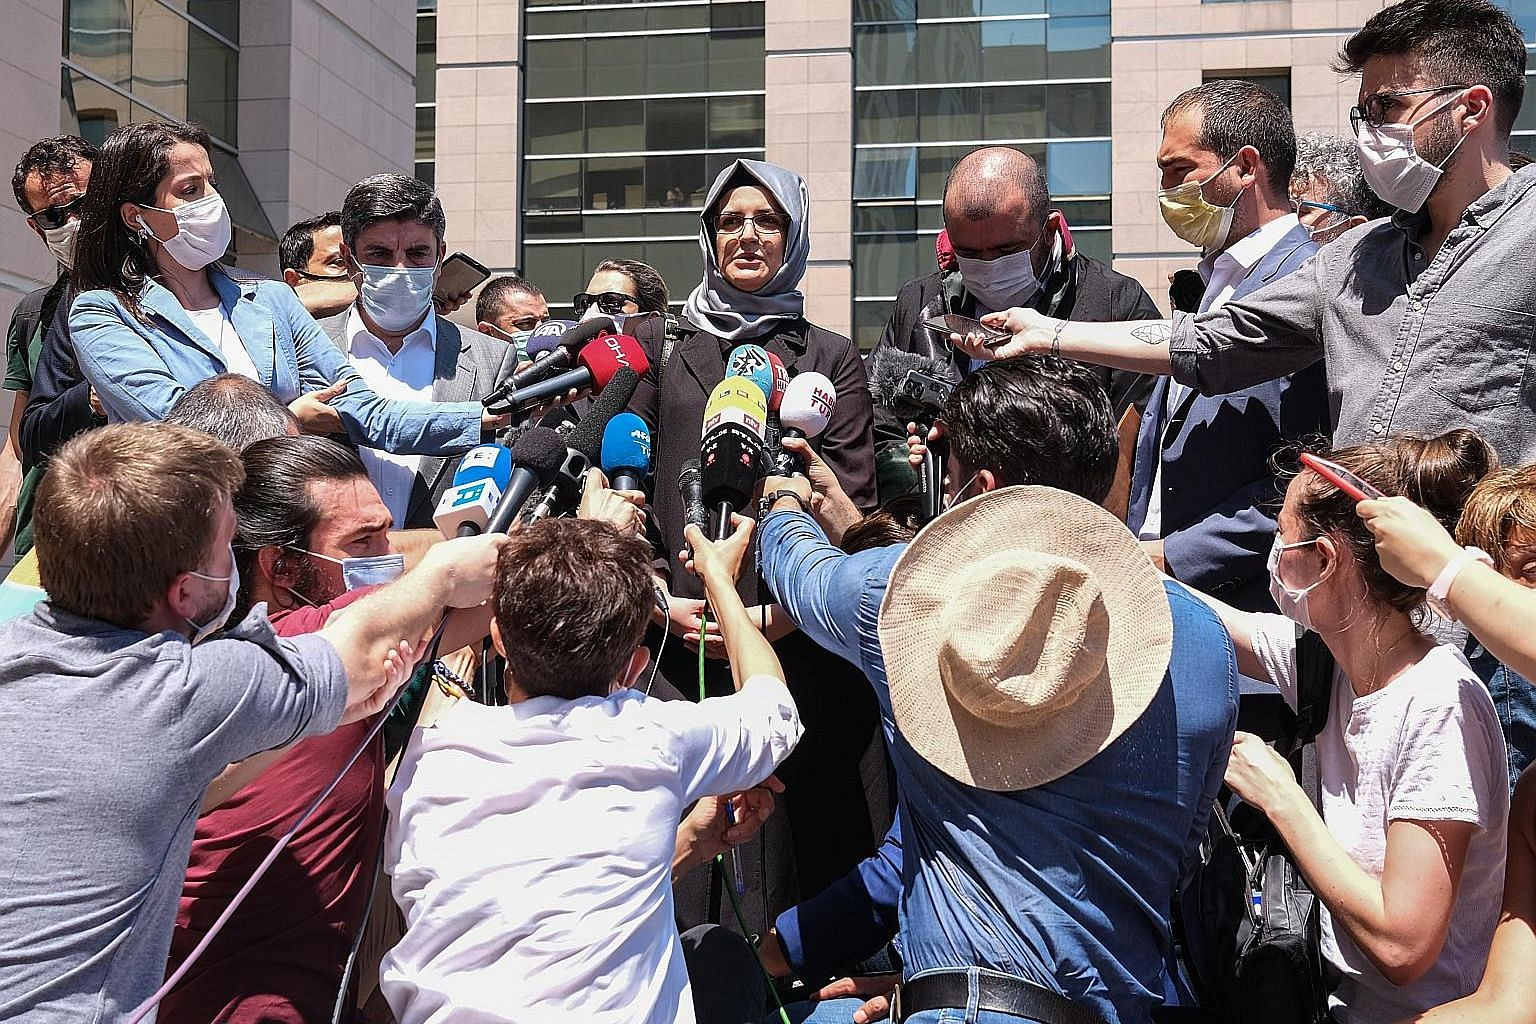 Ms Hatice Cengiz (top), the fiancee of Saudi journalist Jamal Khashoggi, speaking after the first session of his murder trial in Istanbul on Friday. PHOTOS: EPA-EFE